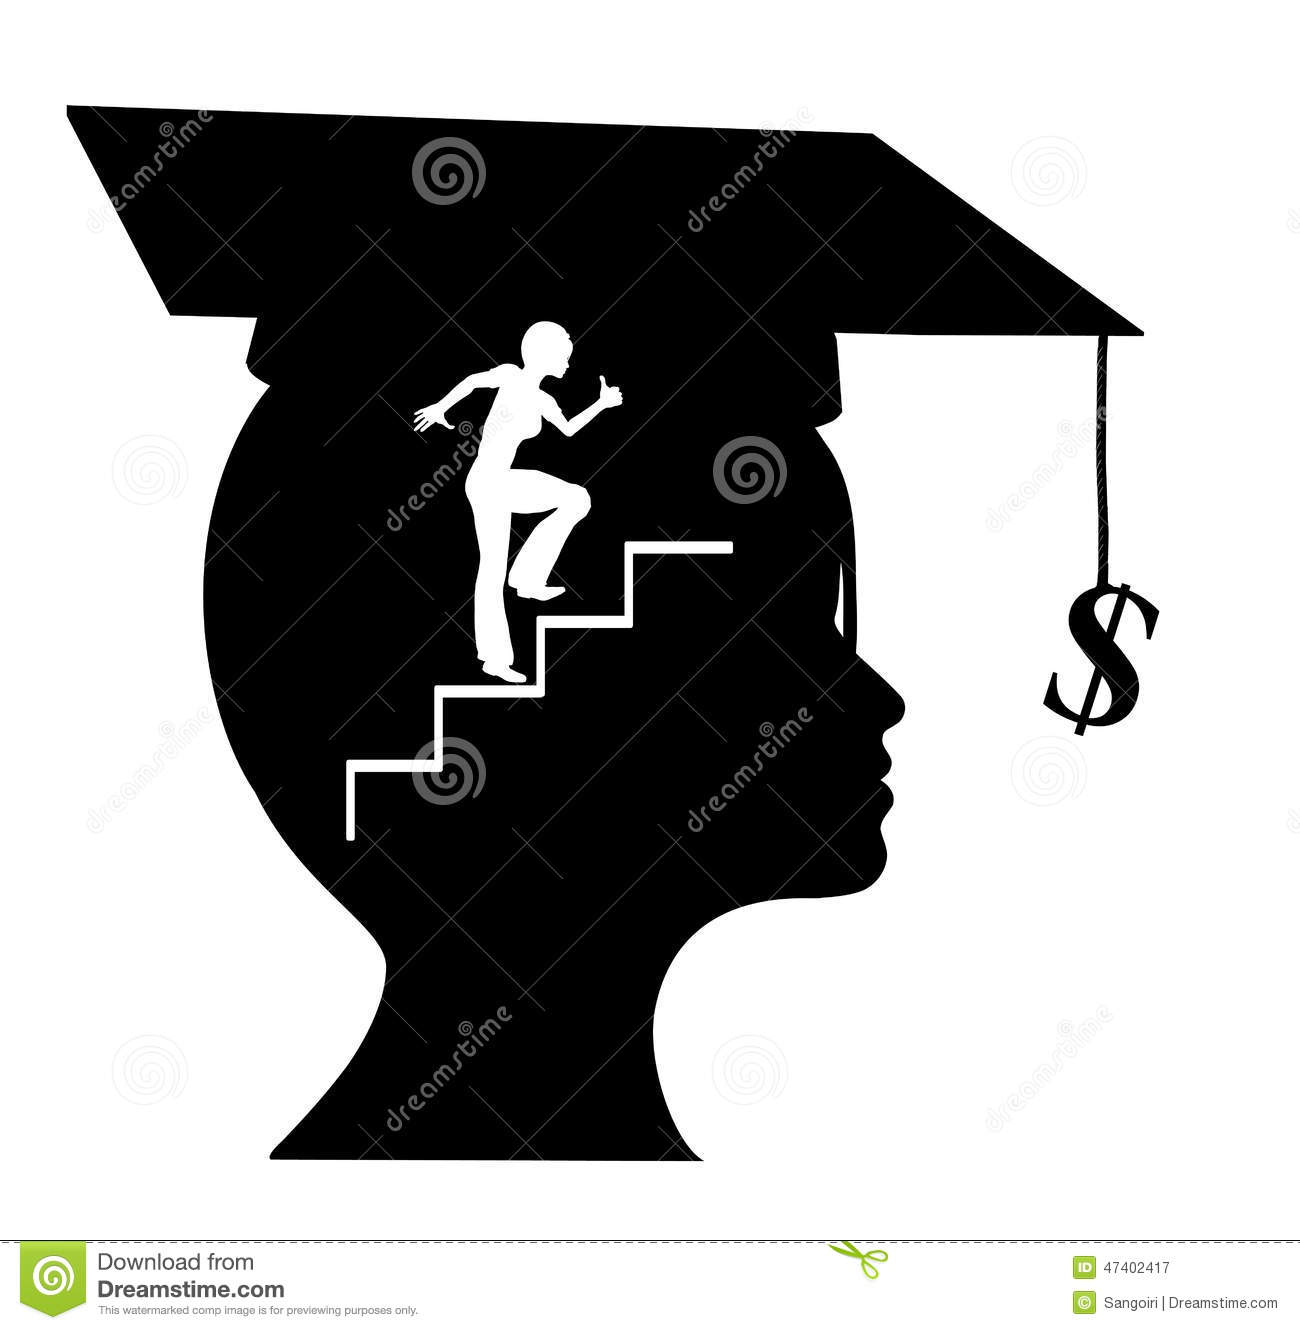 Career After Graduation Stock Illustration - Image: 47402417